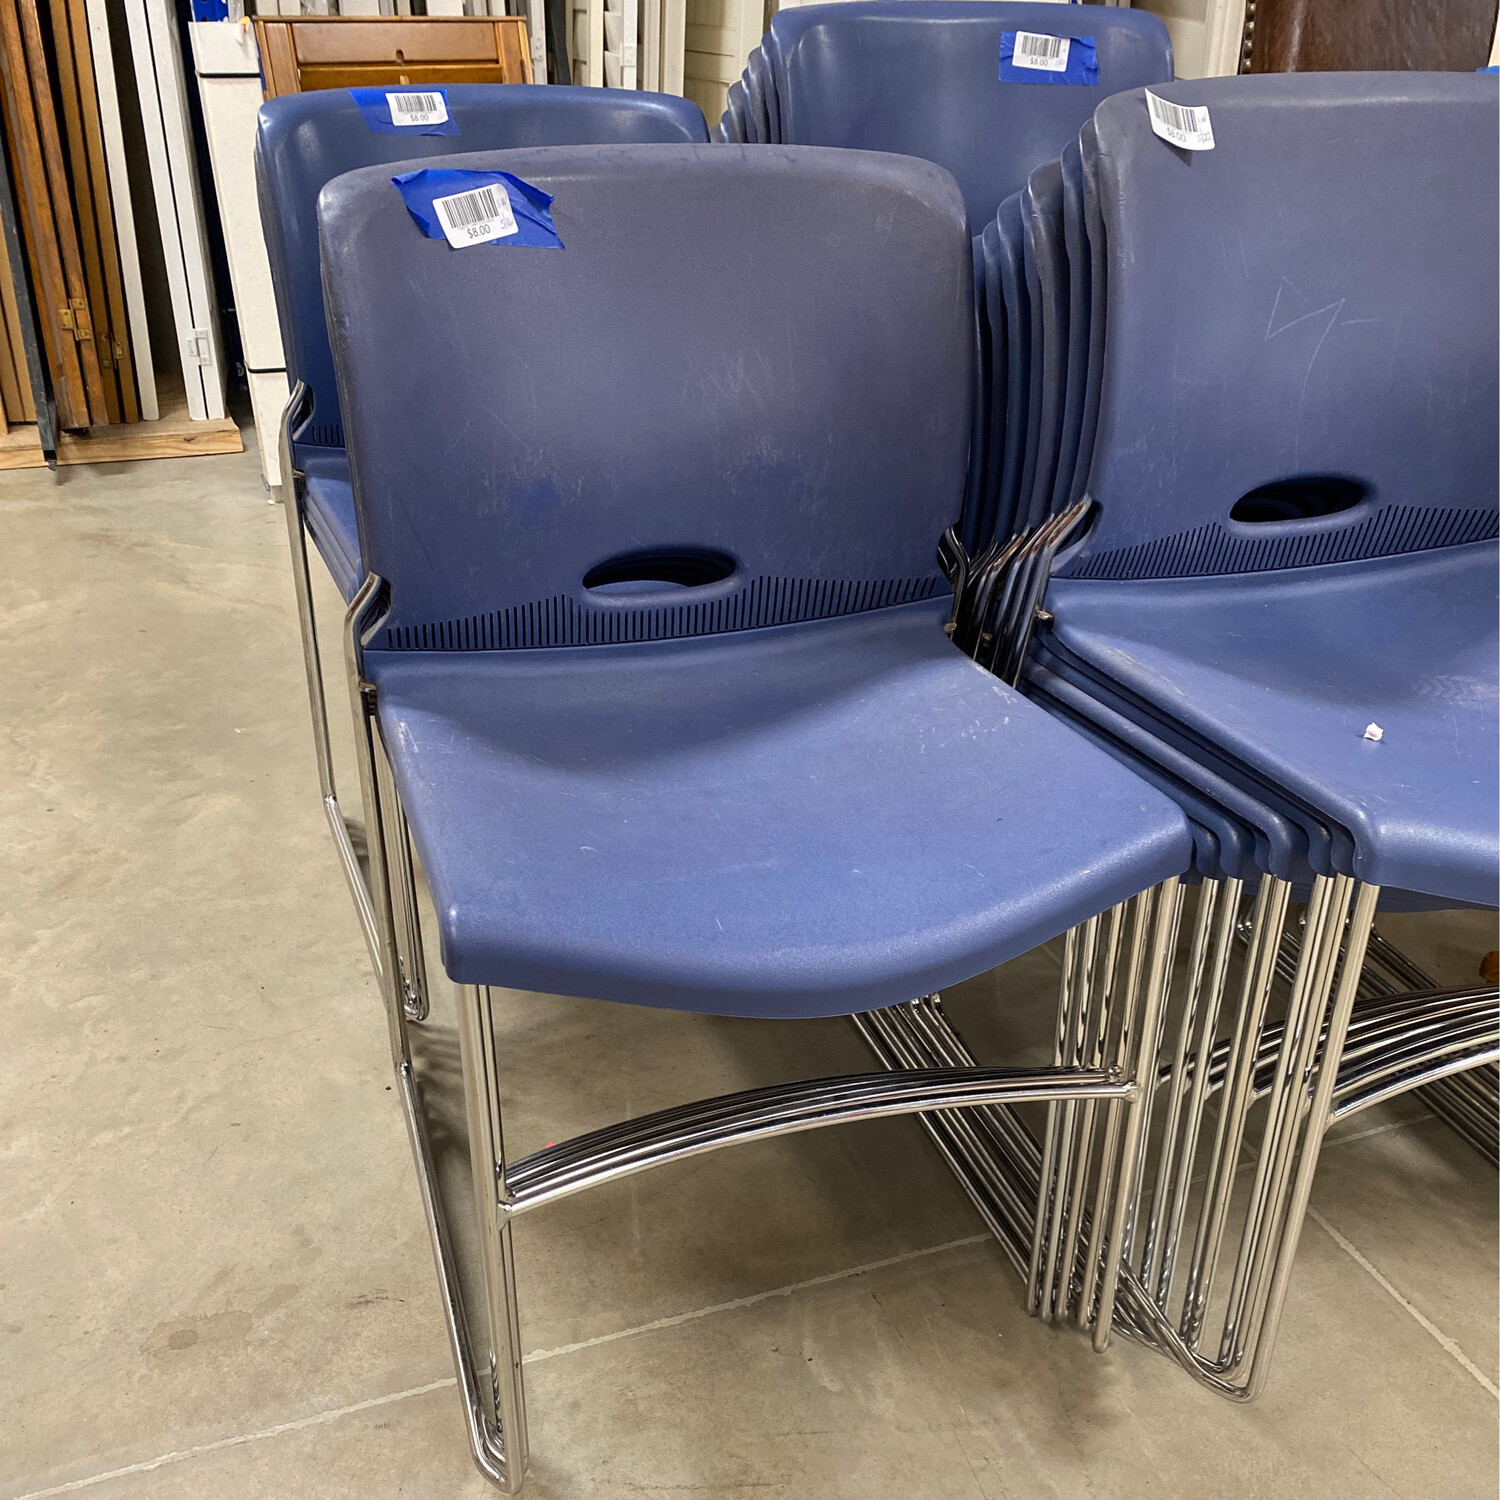 PLASTIC CHAIR STACKABLE